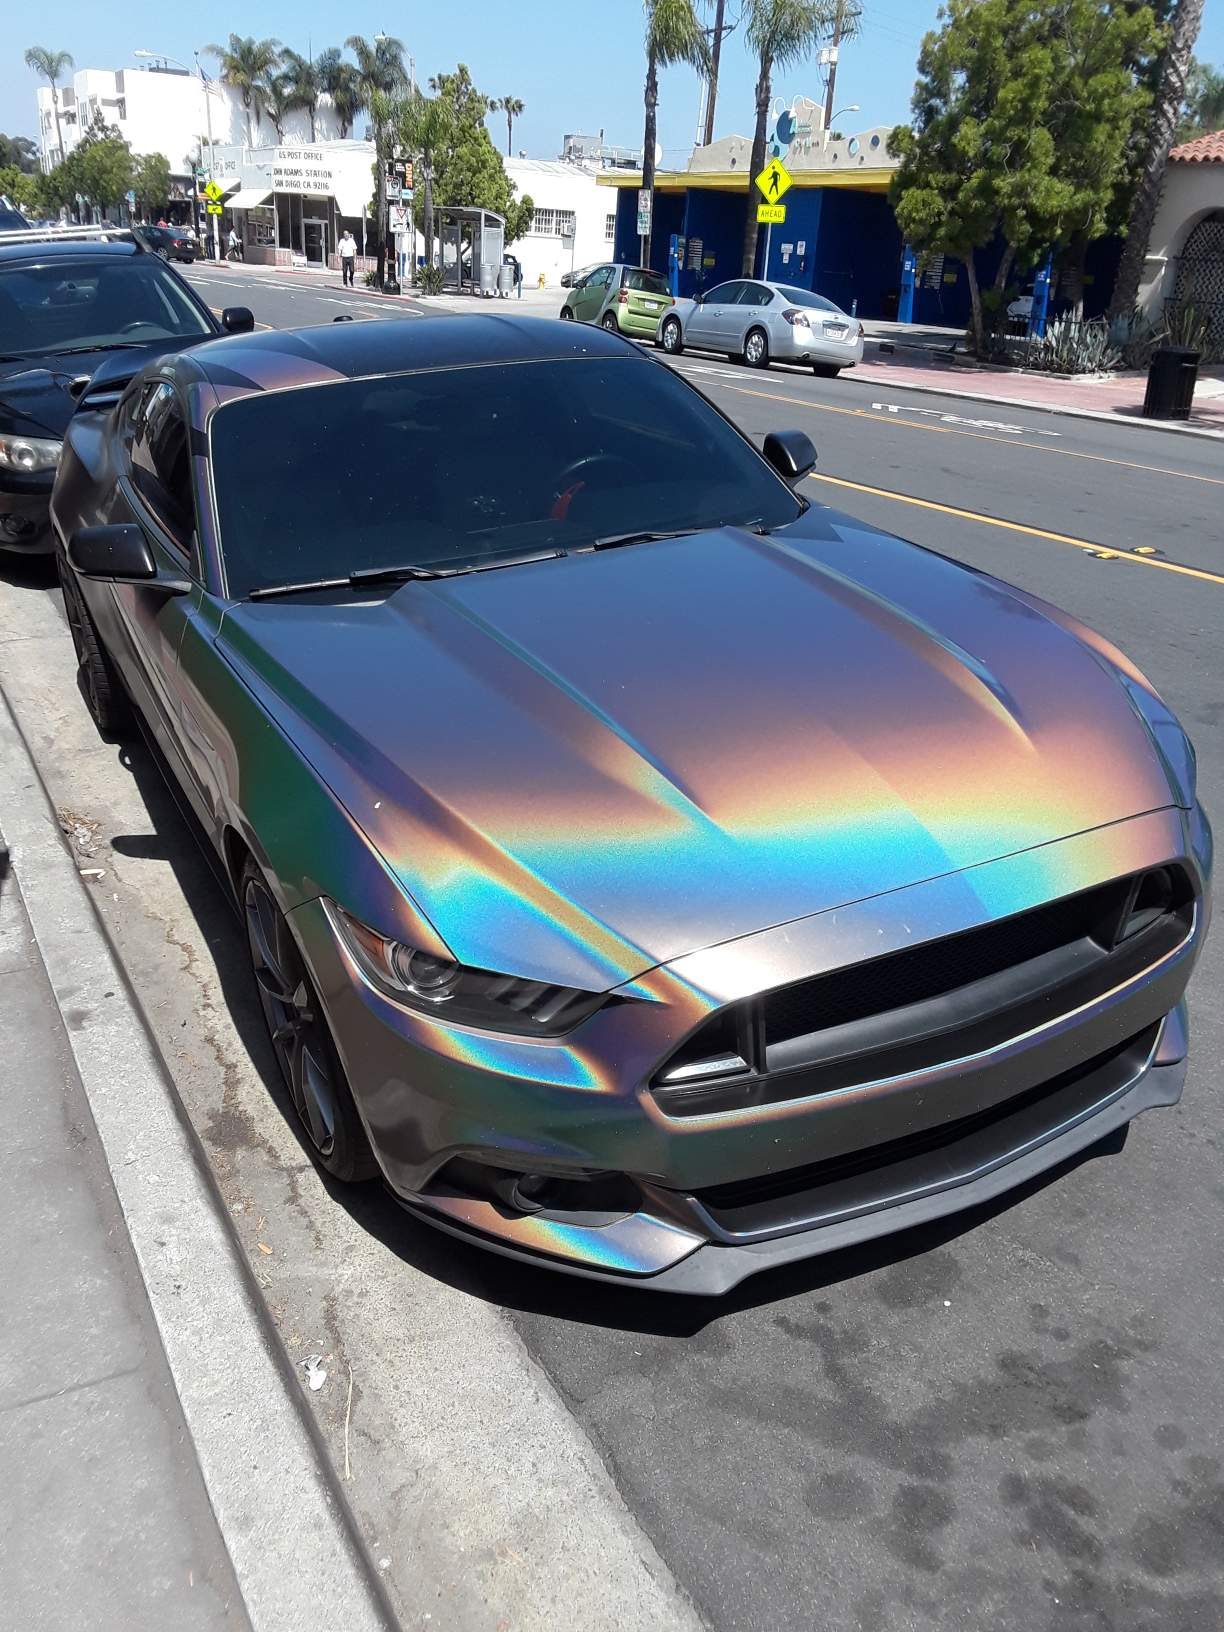 Mustang Paint Jobs : mustang, paint, Amazing, Paint, Outside, Bitcoin, Charger, Mustang?, SteemKR